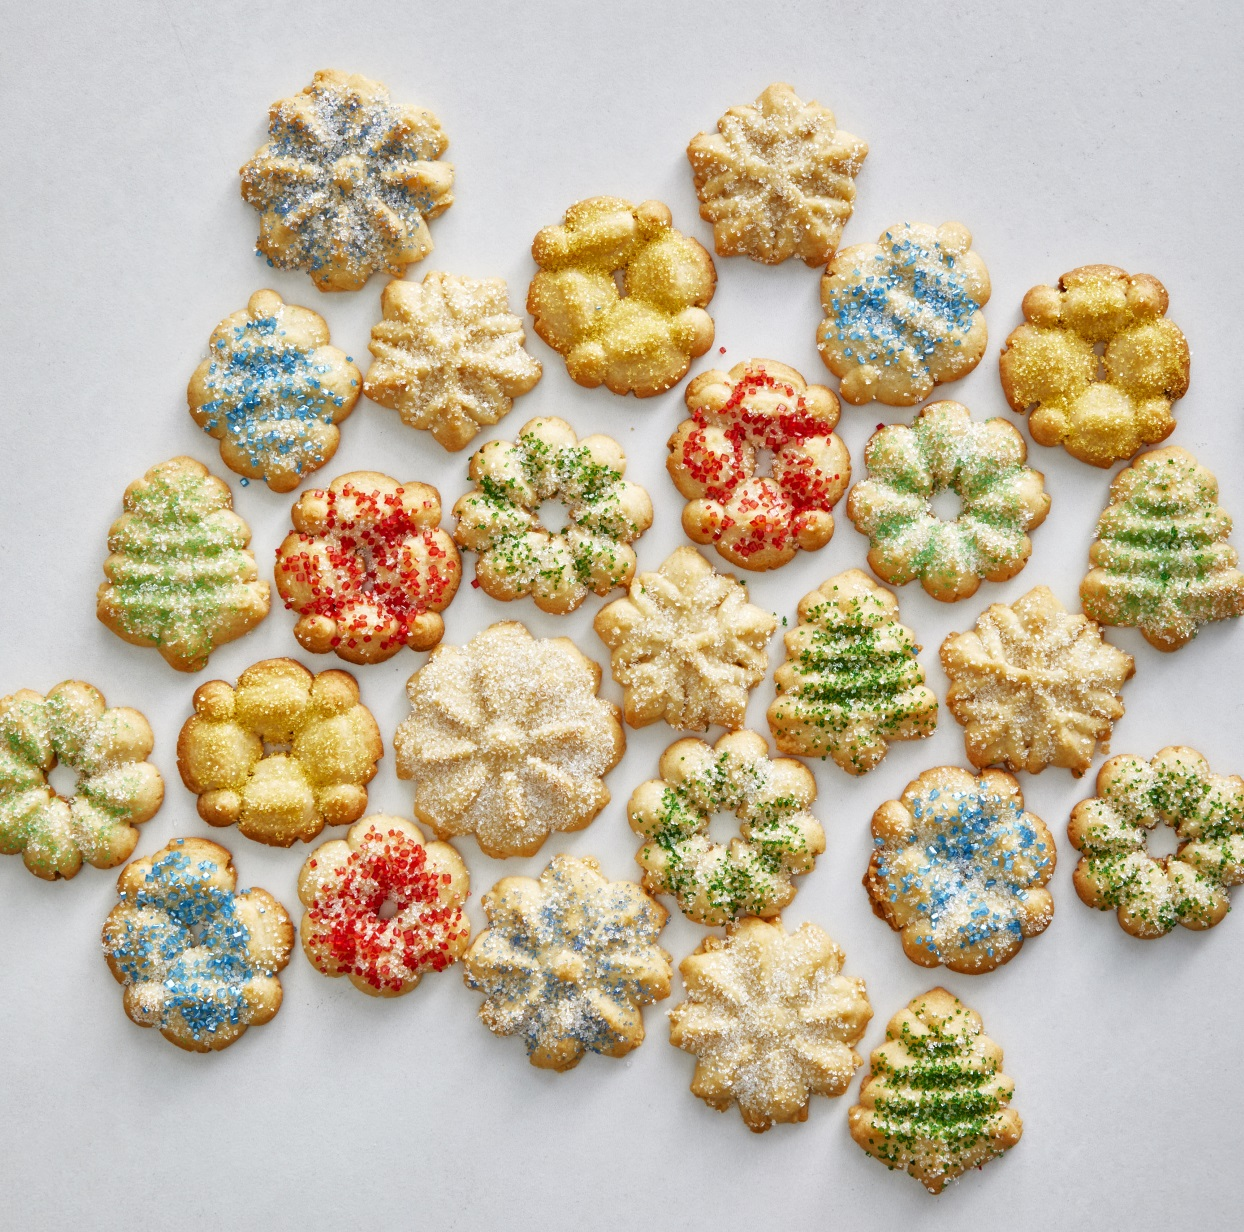 It's time to break out your spritz cookie press for these festive Christmas spritz cookies! These easy Christmas cookies can be decorated with sprinkles or flavored with citrus, spices or sweet sugar glaze. And if you're looking for healthy cookies, these fit the bill thanks to whole-wheat pastry flour that keeps their texture soft while giving them a boost of fiber. For ideas on how to dress up these spritz cookies even more with different flavorings or a glaze, see Tips below. Source: EatingWell.com, November 2019